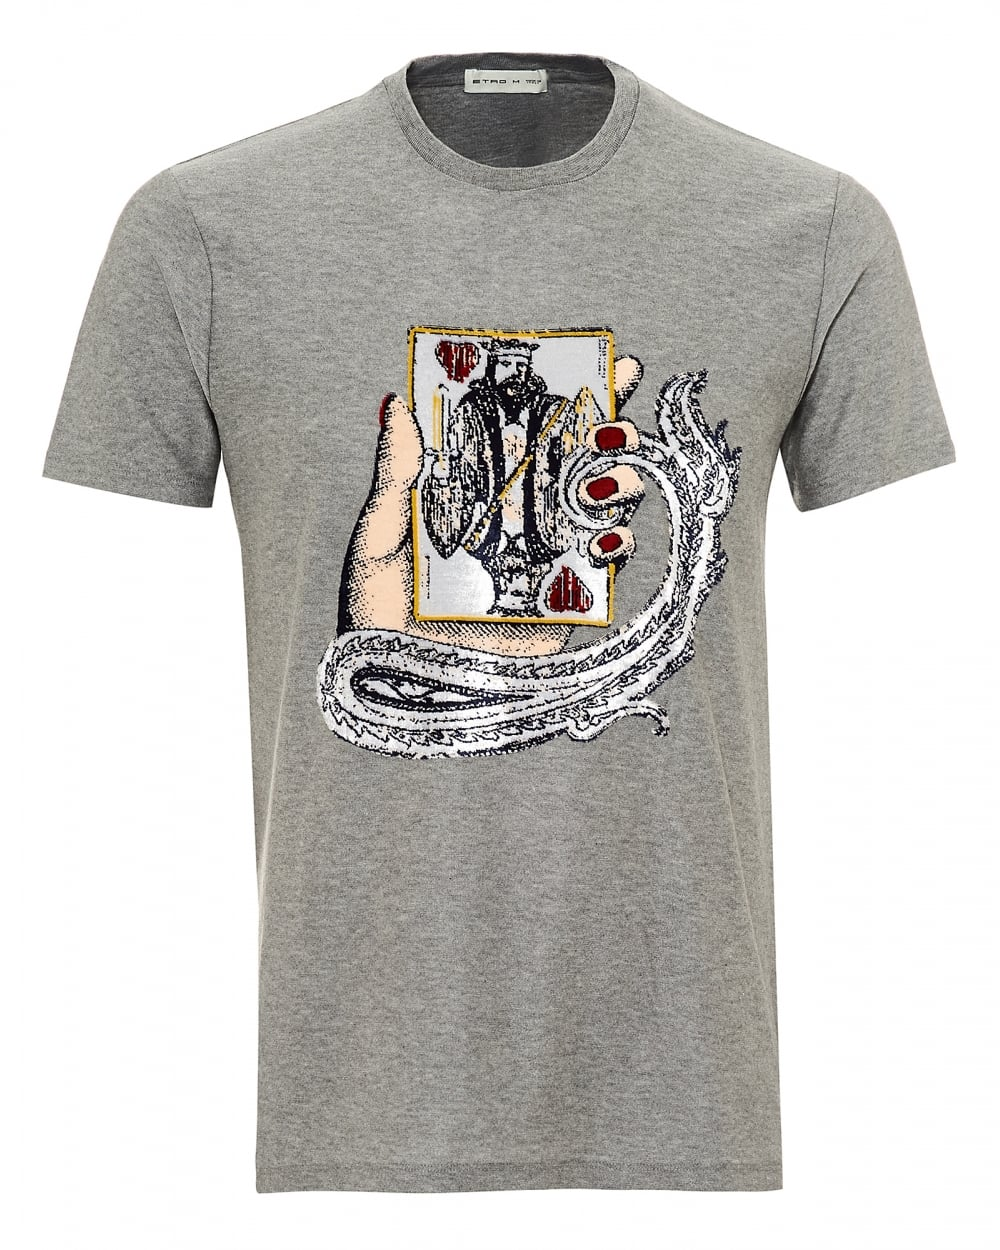 Factory Outlet Cheap Price King of Hearts T-shirt - Grey Etro Sale Low Price Up To Date BwWUaqv